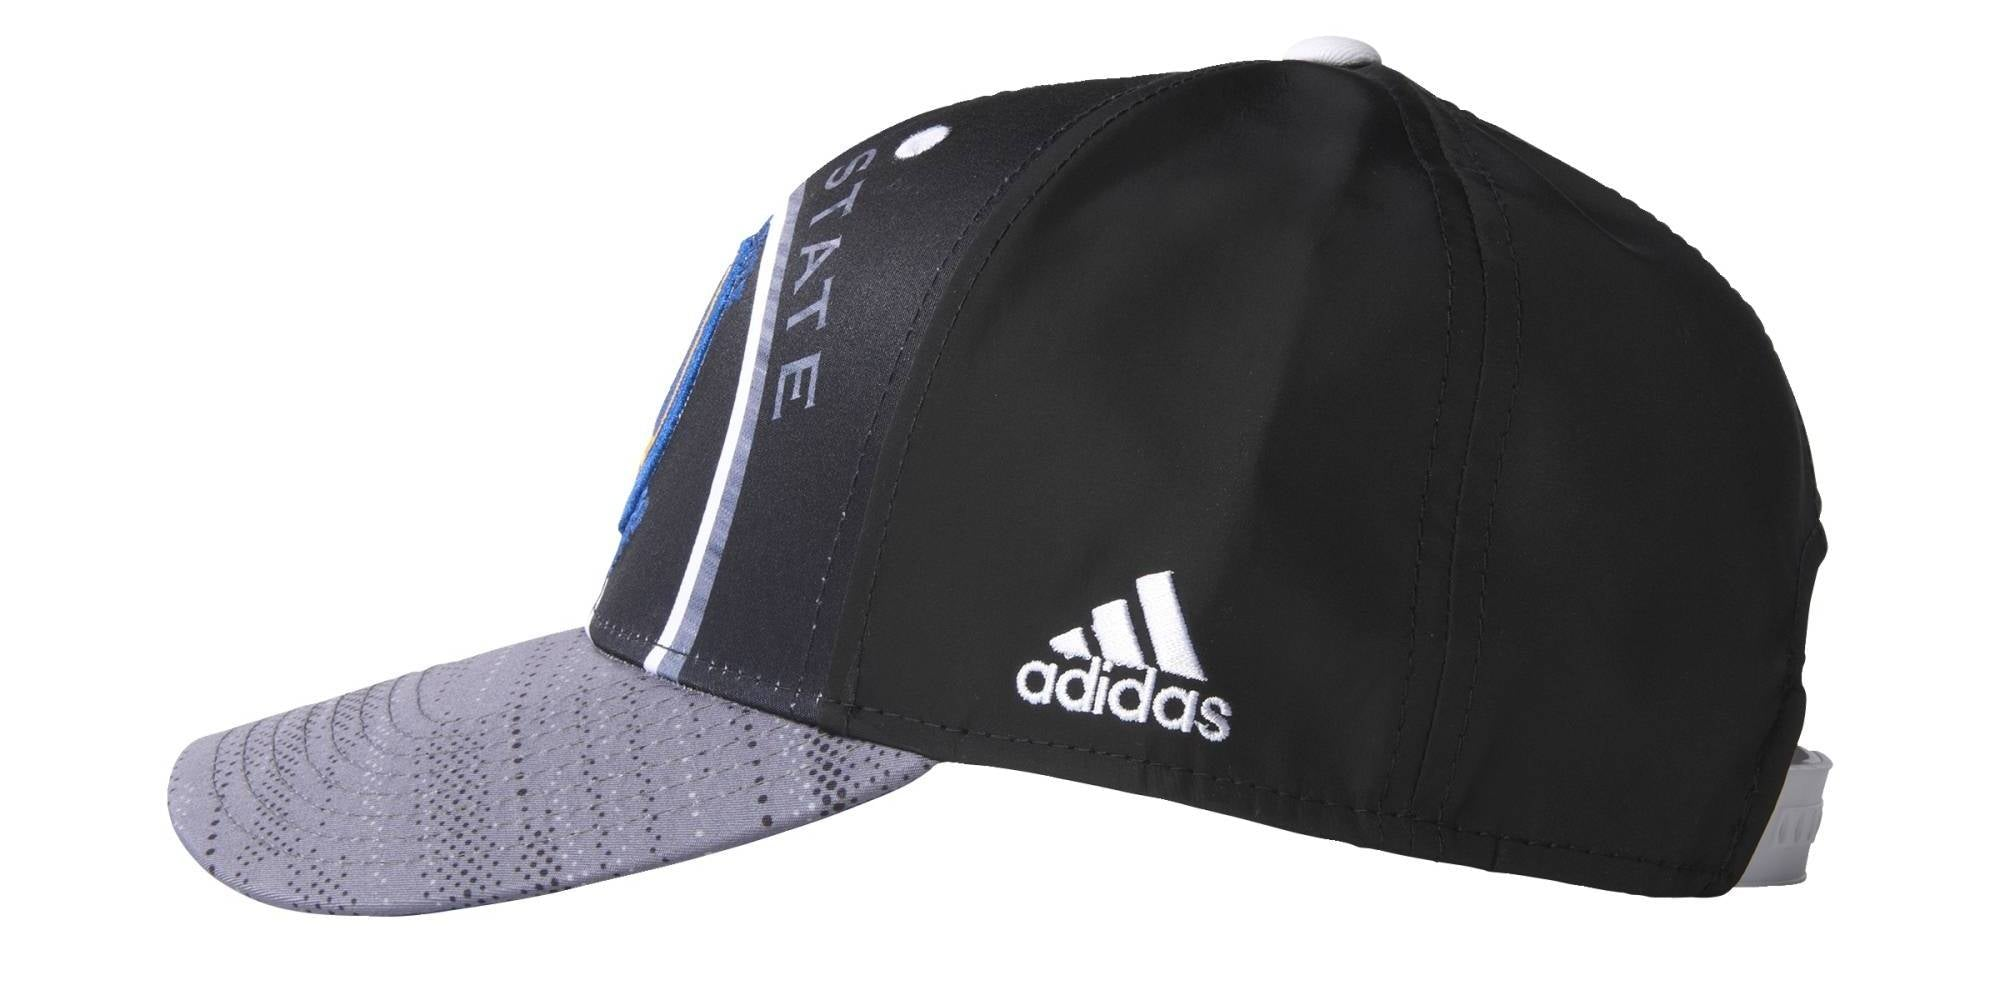 Adidas NBA Golden State Warriors Cap - Black/Blue/Yellow